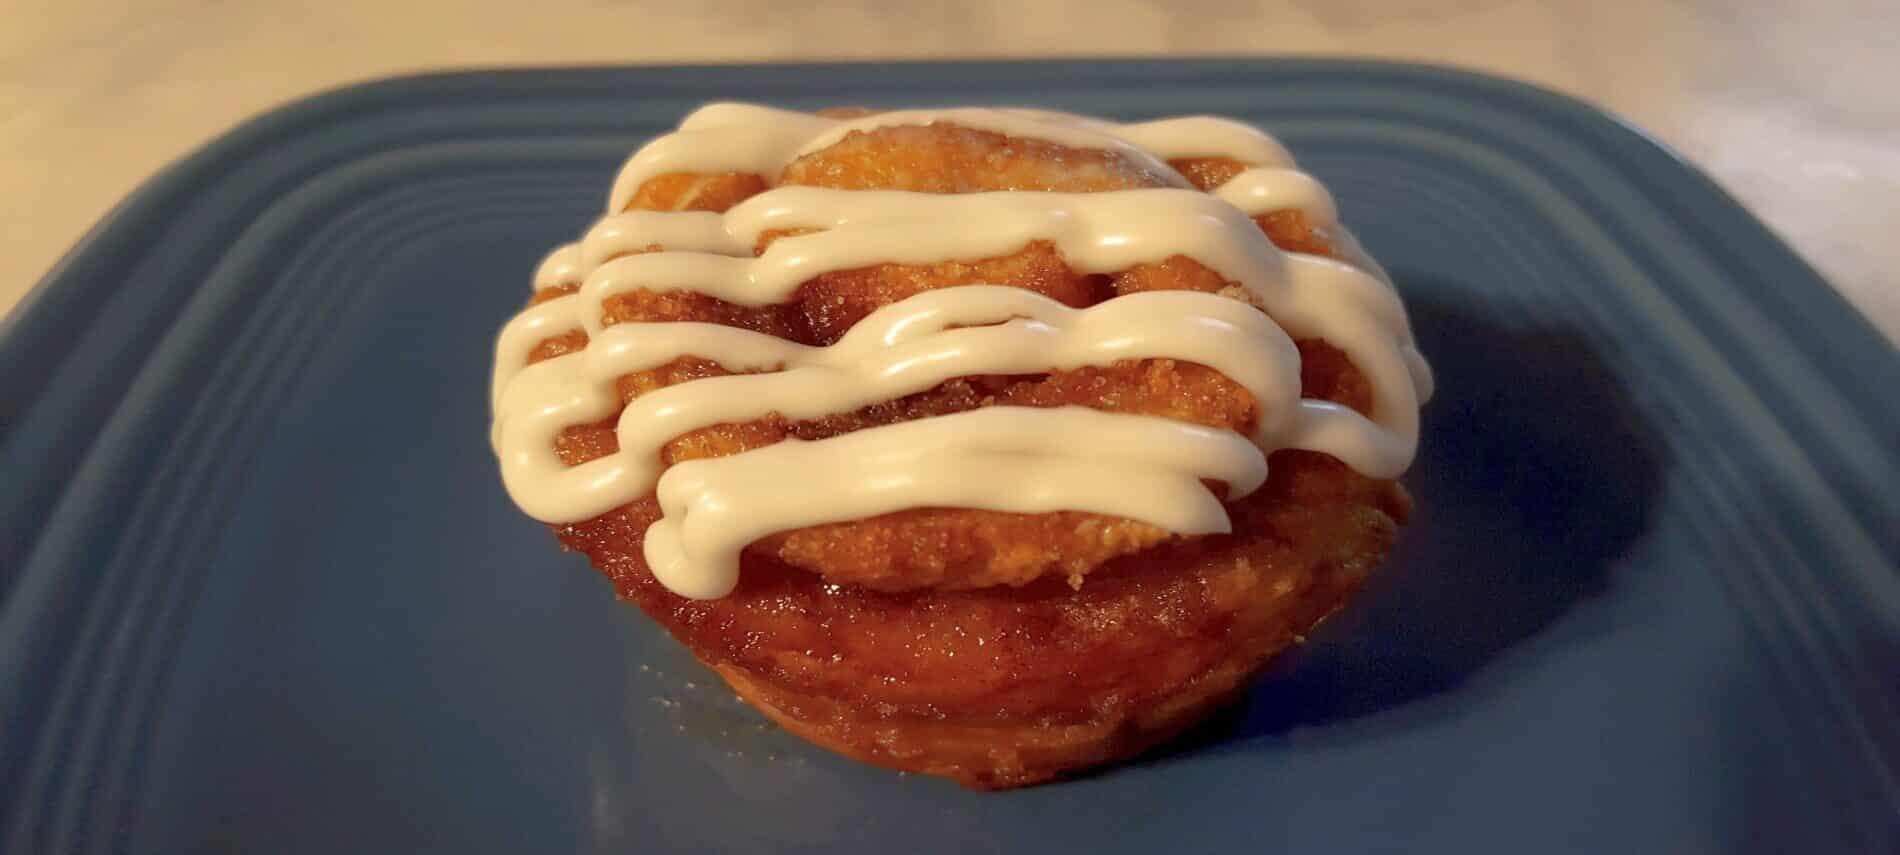 light brown muffin with cinnamon swirl, topped with cream cheese glaze on blue plate